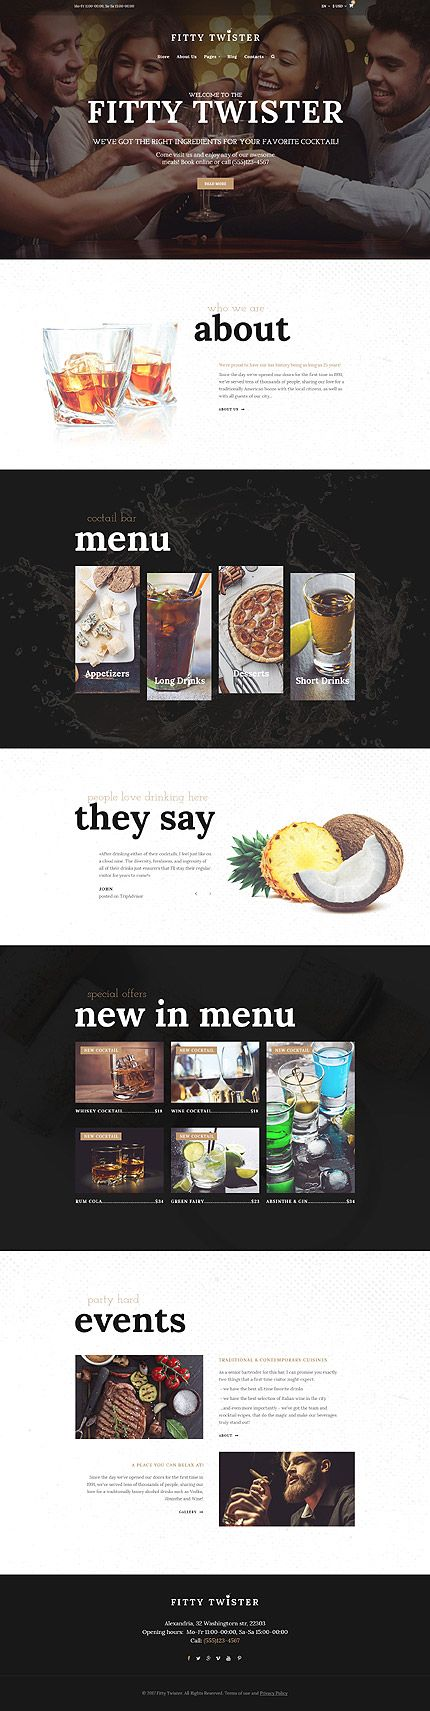 Cafe and Restaurant Most Popular website inspirations at your coffee break? Browse for more Joomla #templates! // Regular price: $69 // Sources available: .PSD, .PHP #Cafe and Restaurant #Most Popular #Joomla